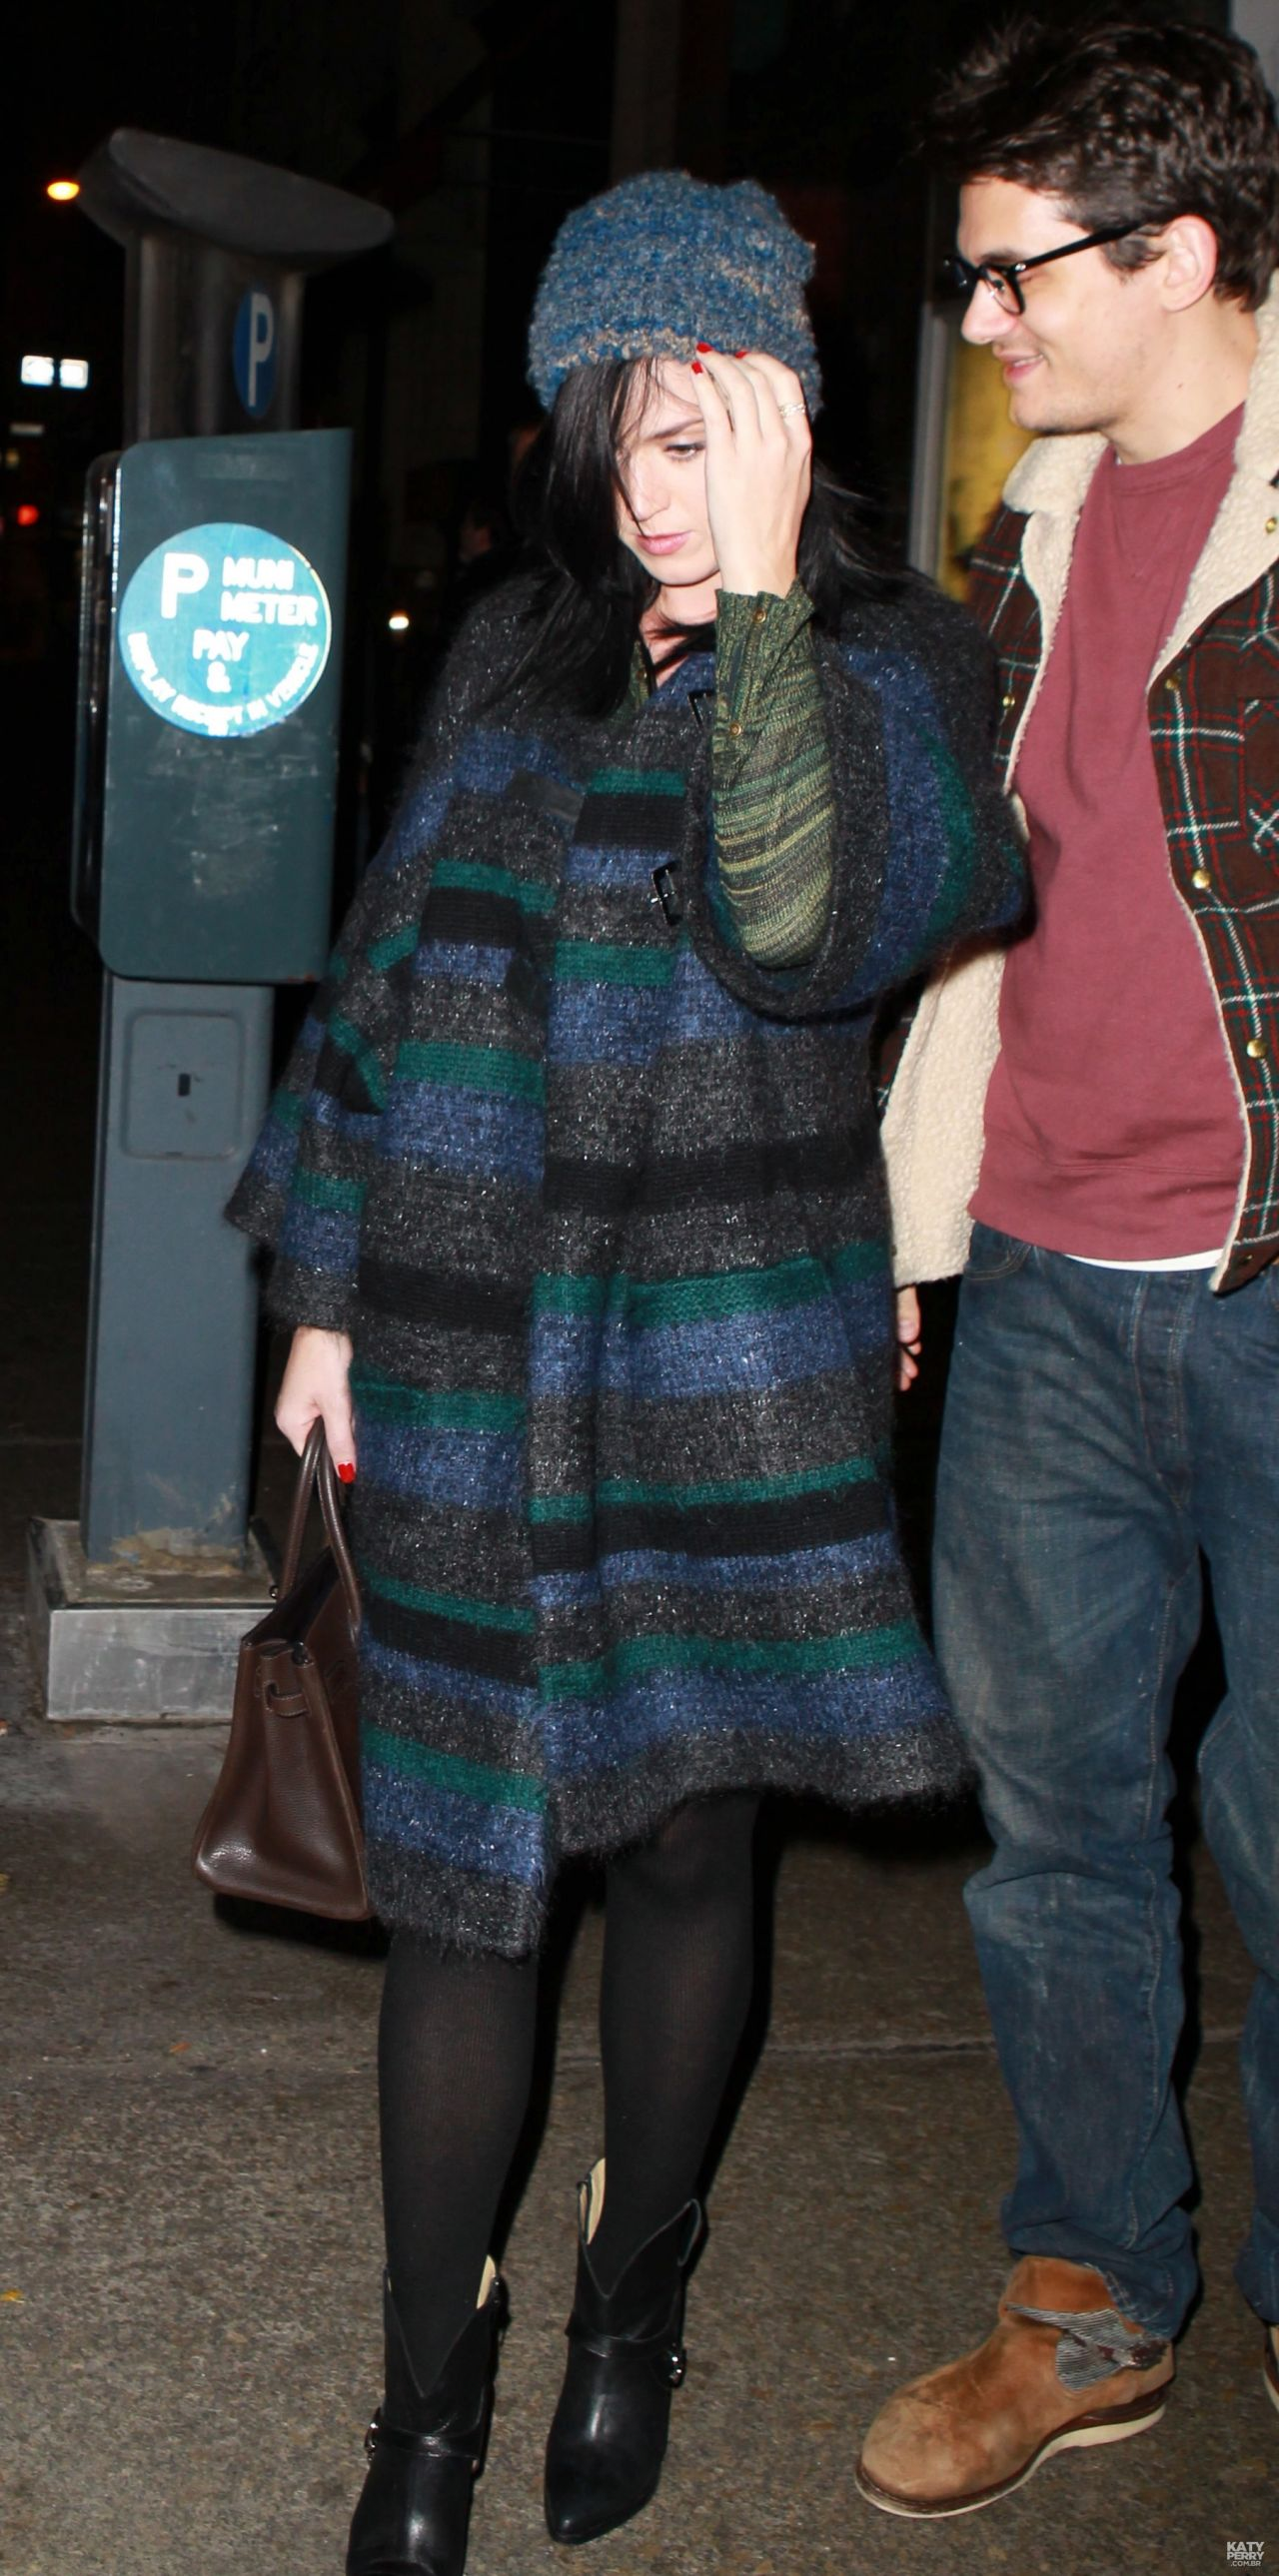 Katy Perry Street Style - Leaving ABC Kitchen Restaurant In New York - November 2013